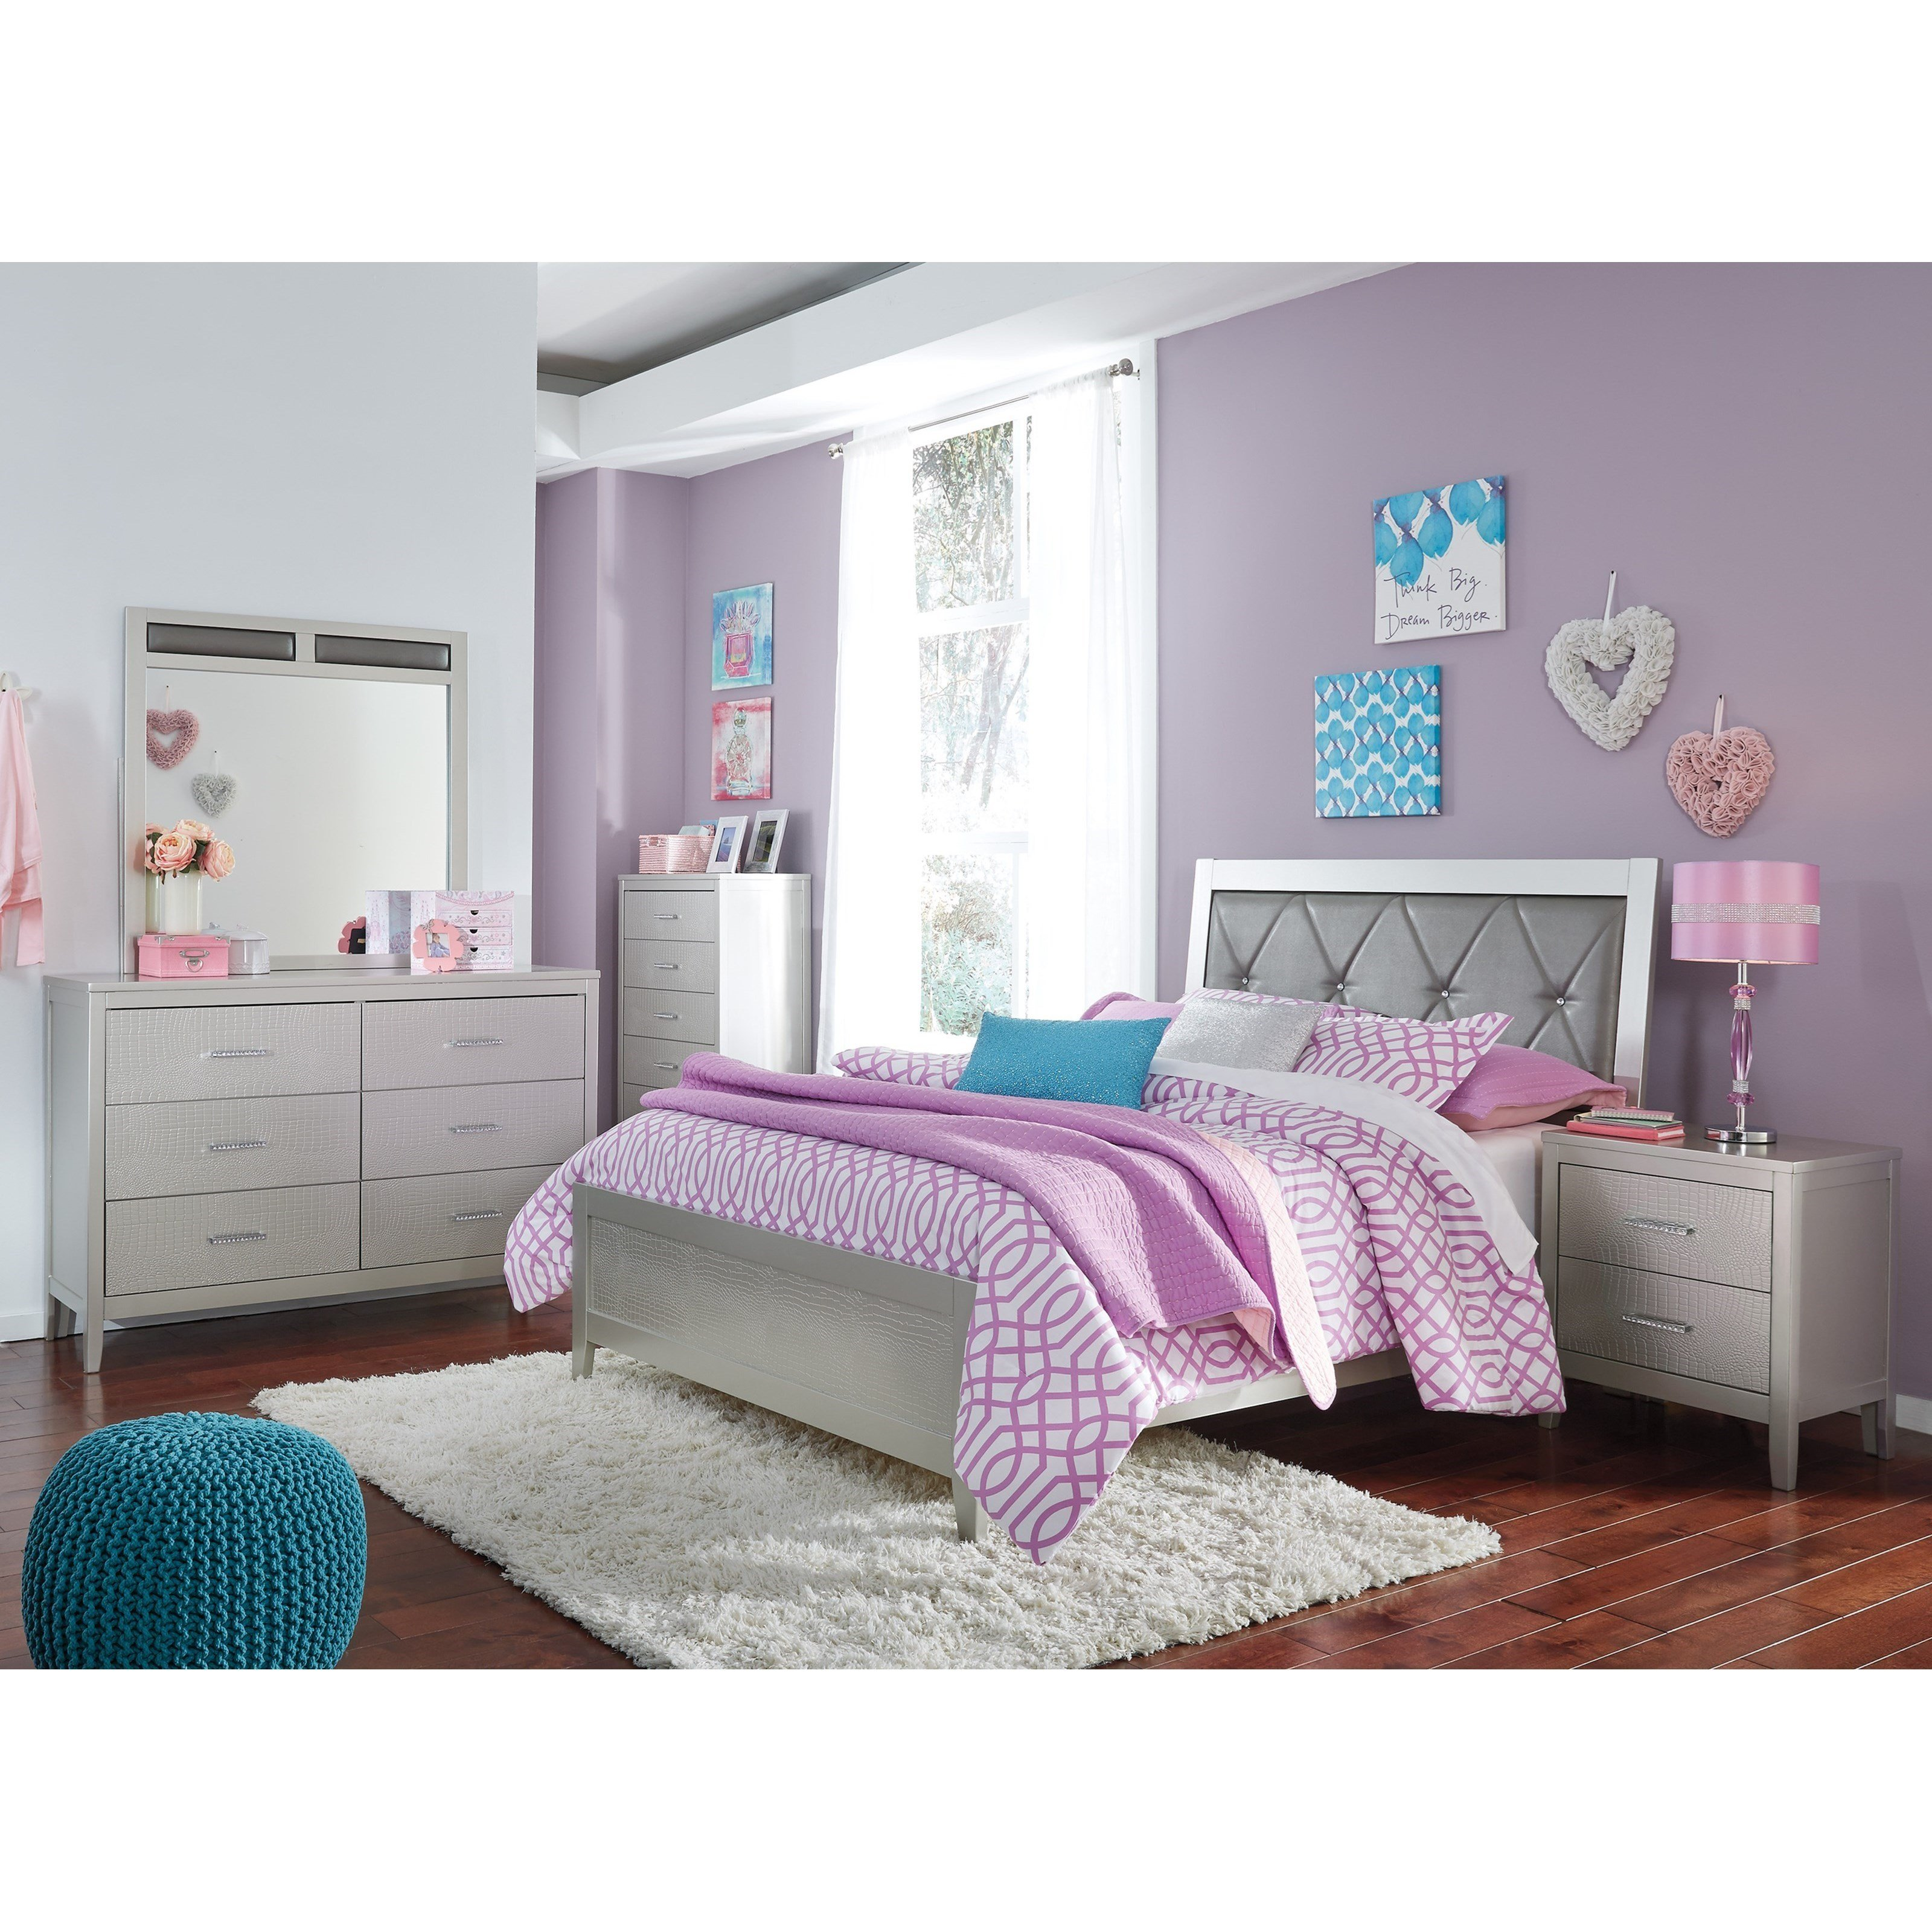 Best Signature Design By Ashley Olivet Glam Full Bedroom Group With Pictures